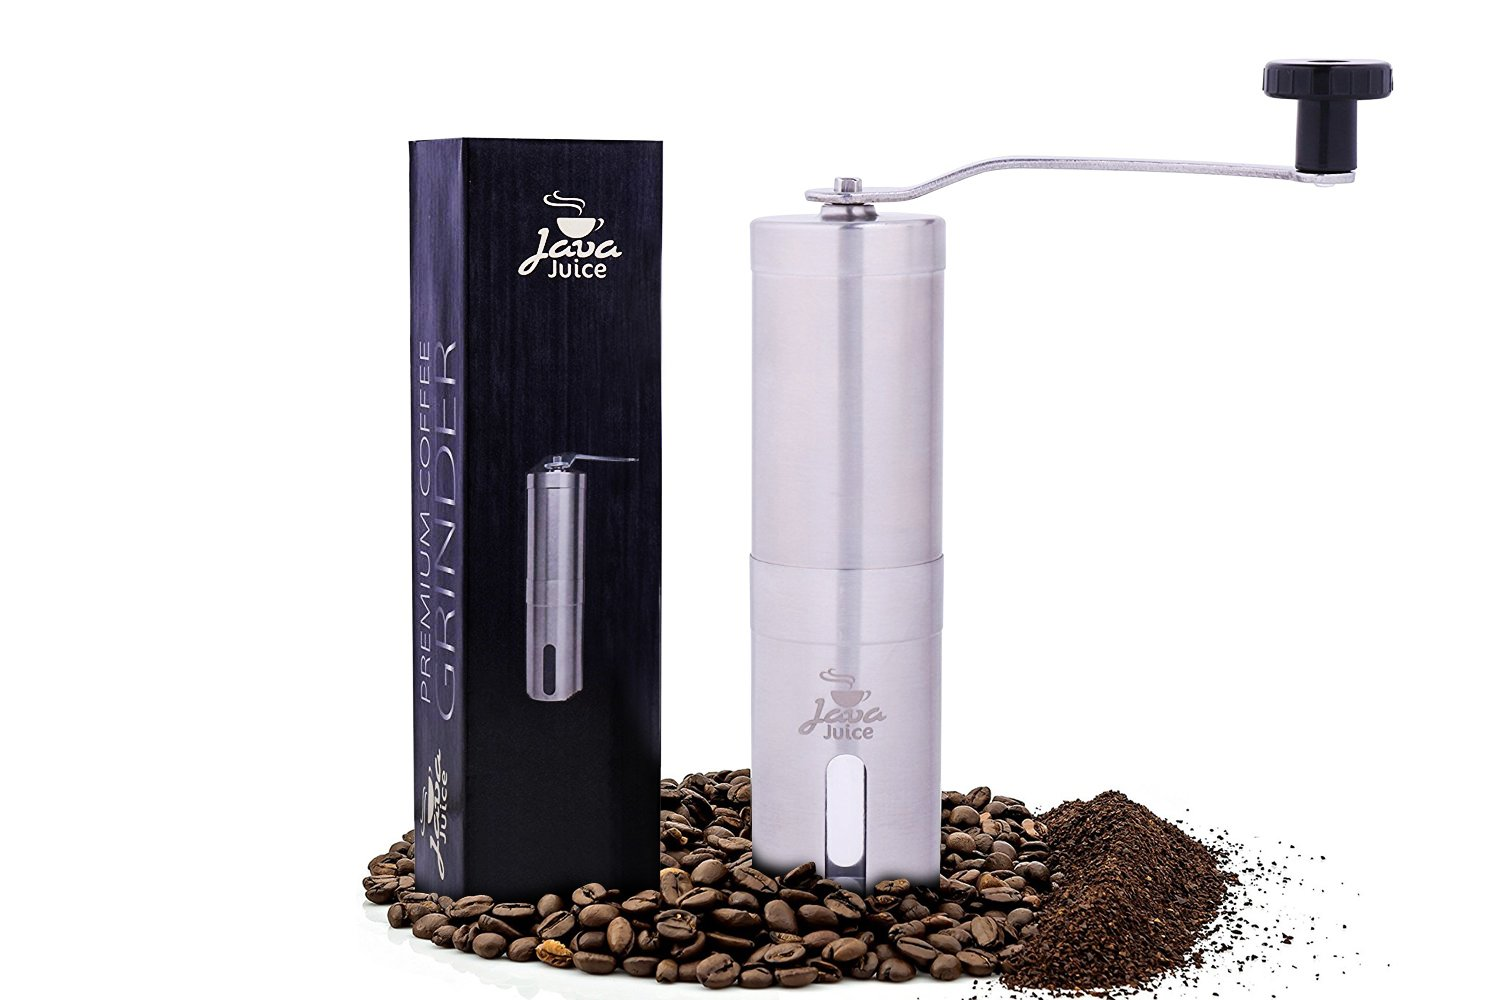 Java Juice Premium Manual Coffee Grinder By Brushed Stainless Steel Personal Coffee Mill - Precision Grinding Conical Burrs - Brewing Essentials Perfect For Home, Office, Or Travel Use